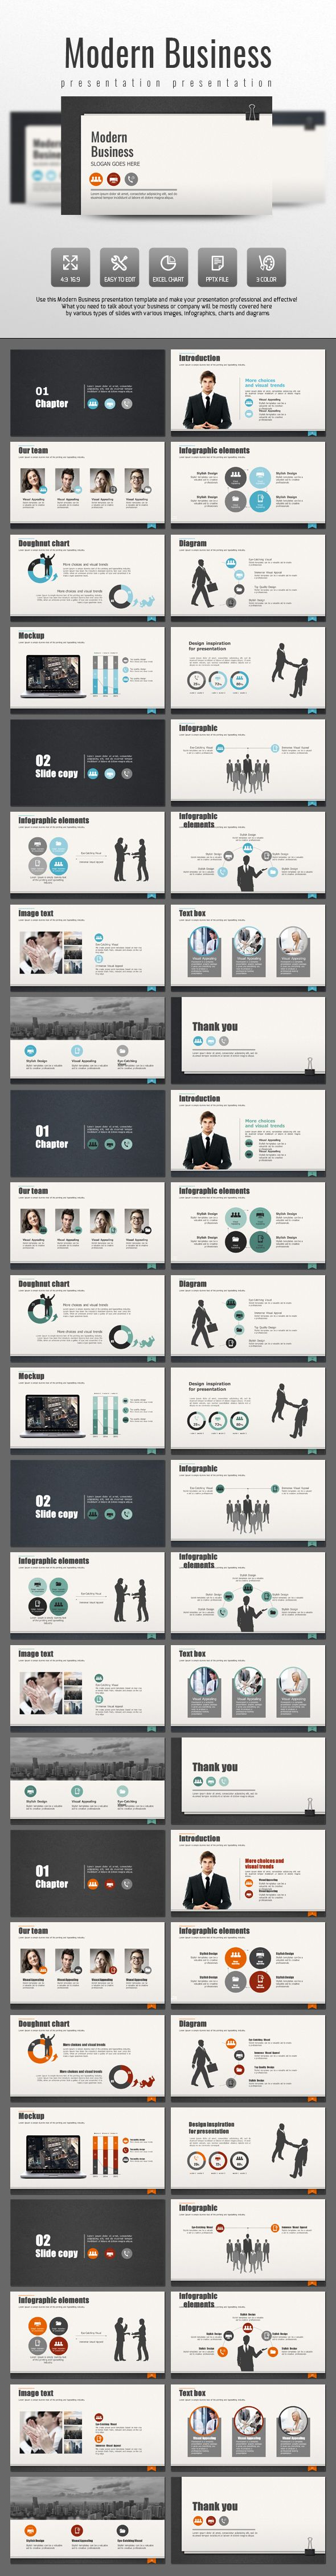 Modern Business PowerPoint Template #design #slides Download: http://graphicriver.net/item/modern-business/14032353?ref=ksioks